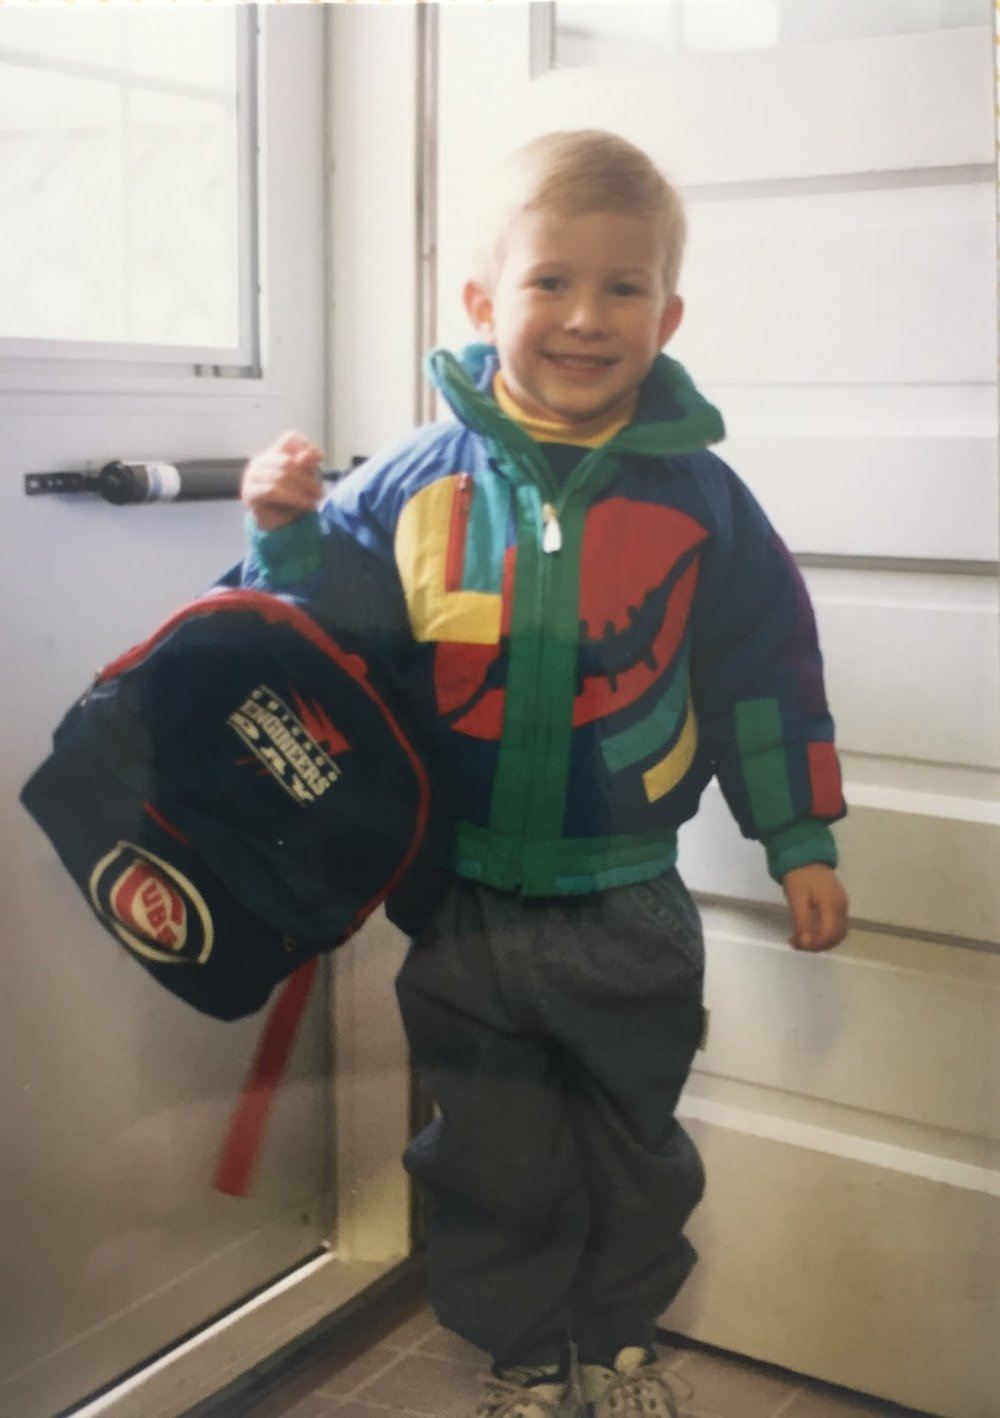 The author's older brother cheesing before his first day of school circa 1993, clad in the popular colors of the era. Photo credit: Scott Fishel